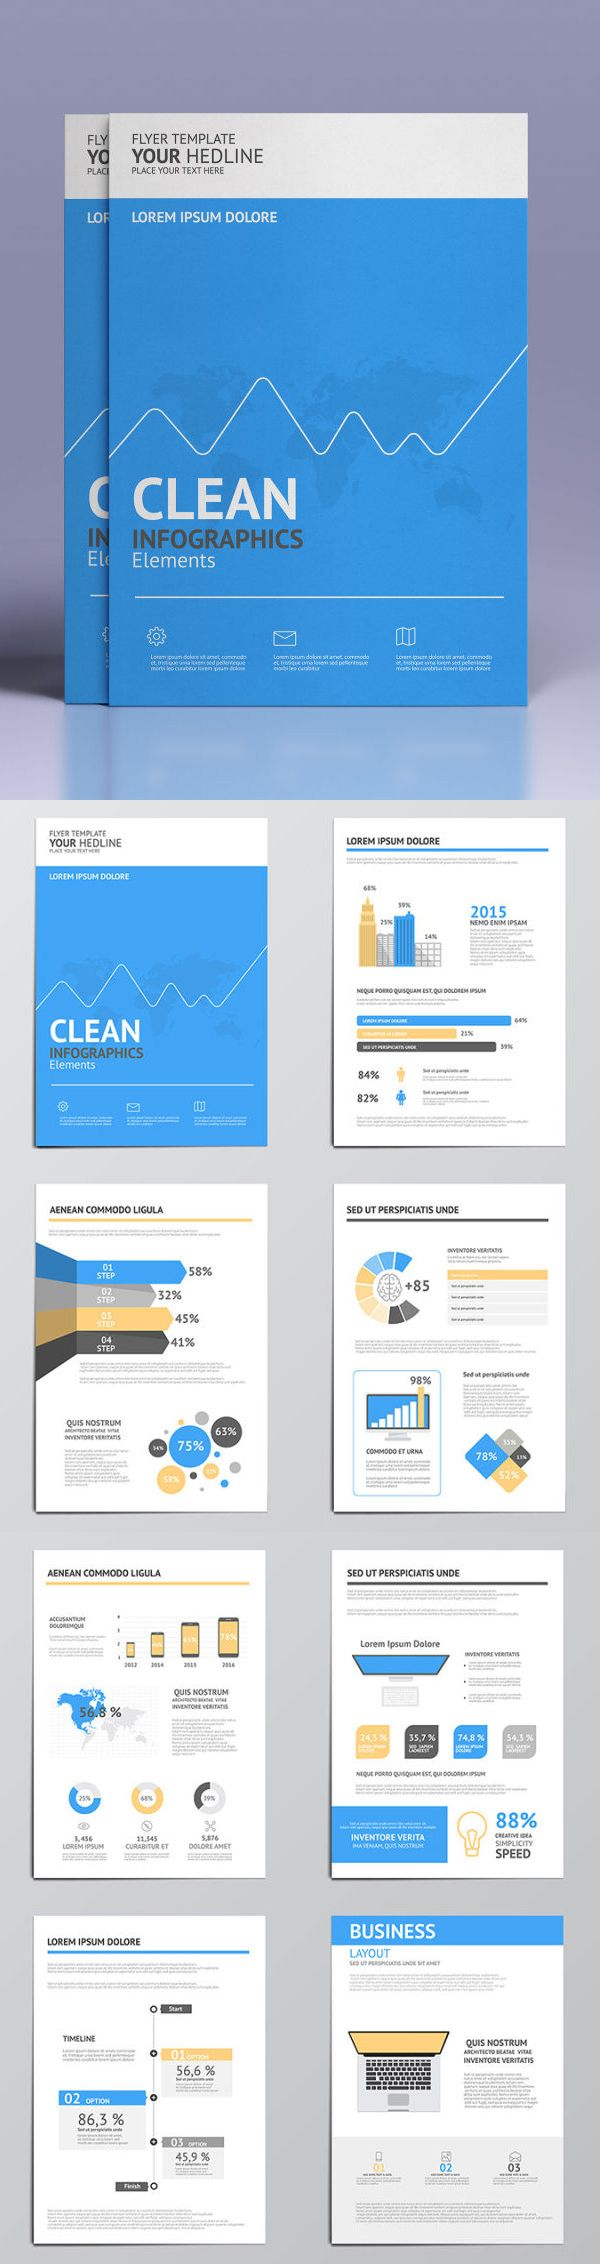 Collection of Modern Infographic Elements in a Flyer and Brochure Concept